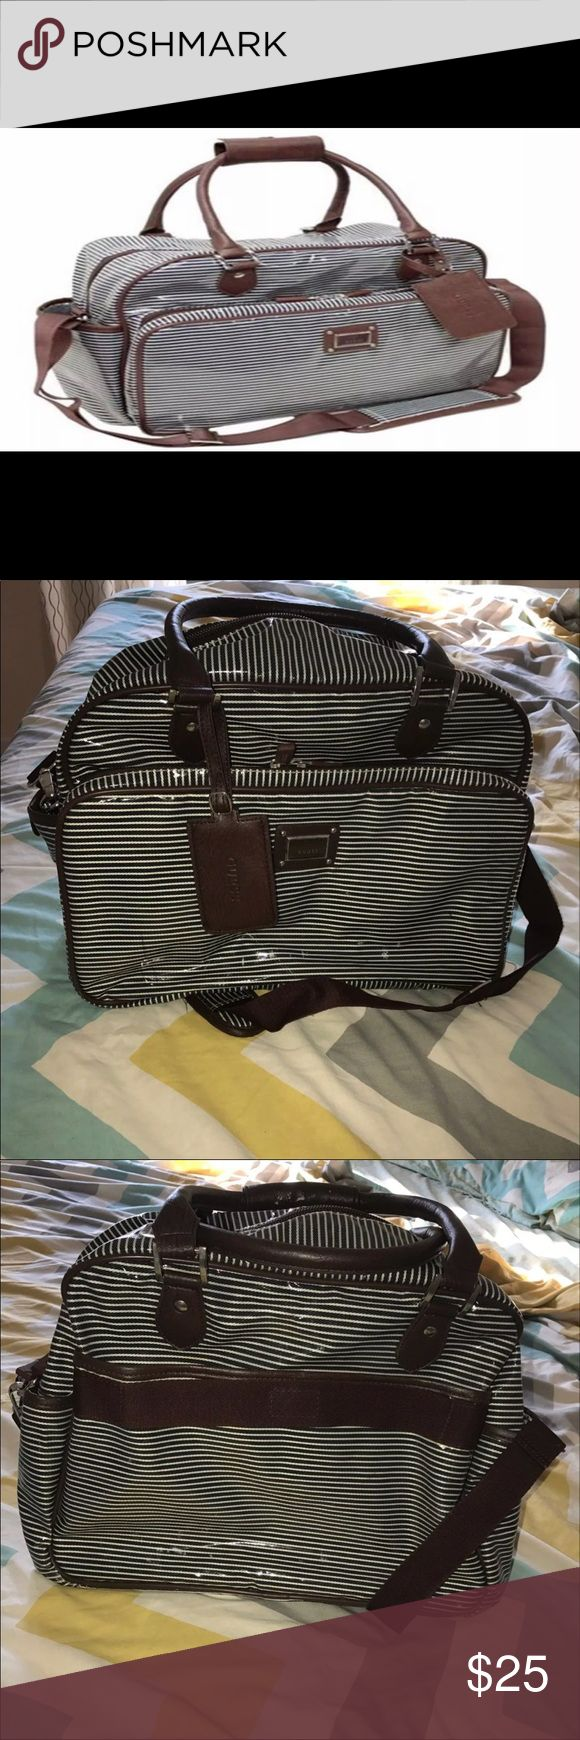 Guess Striped diaper bag Striped Guess Diaper Bag in great condition Bought from another Mercari seller, however I was gifted another diaper bag that we've began to use.  Has few stains on the inside  Originally priced $99.99 Guess brand  Insulated pockets to keep your baby's milk/food warm or cool Bags